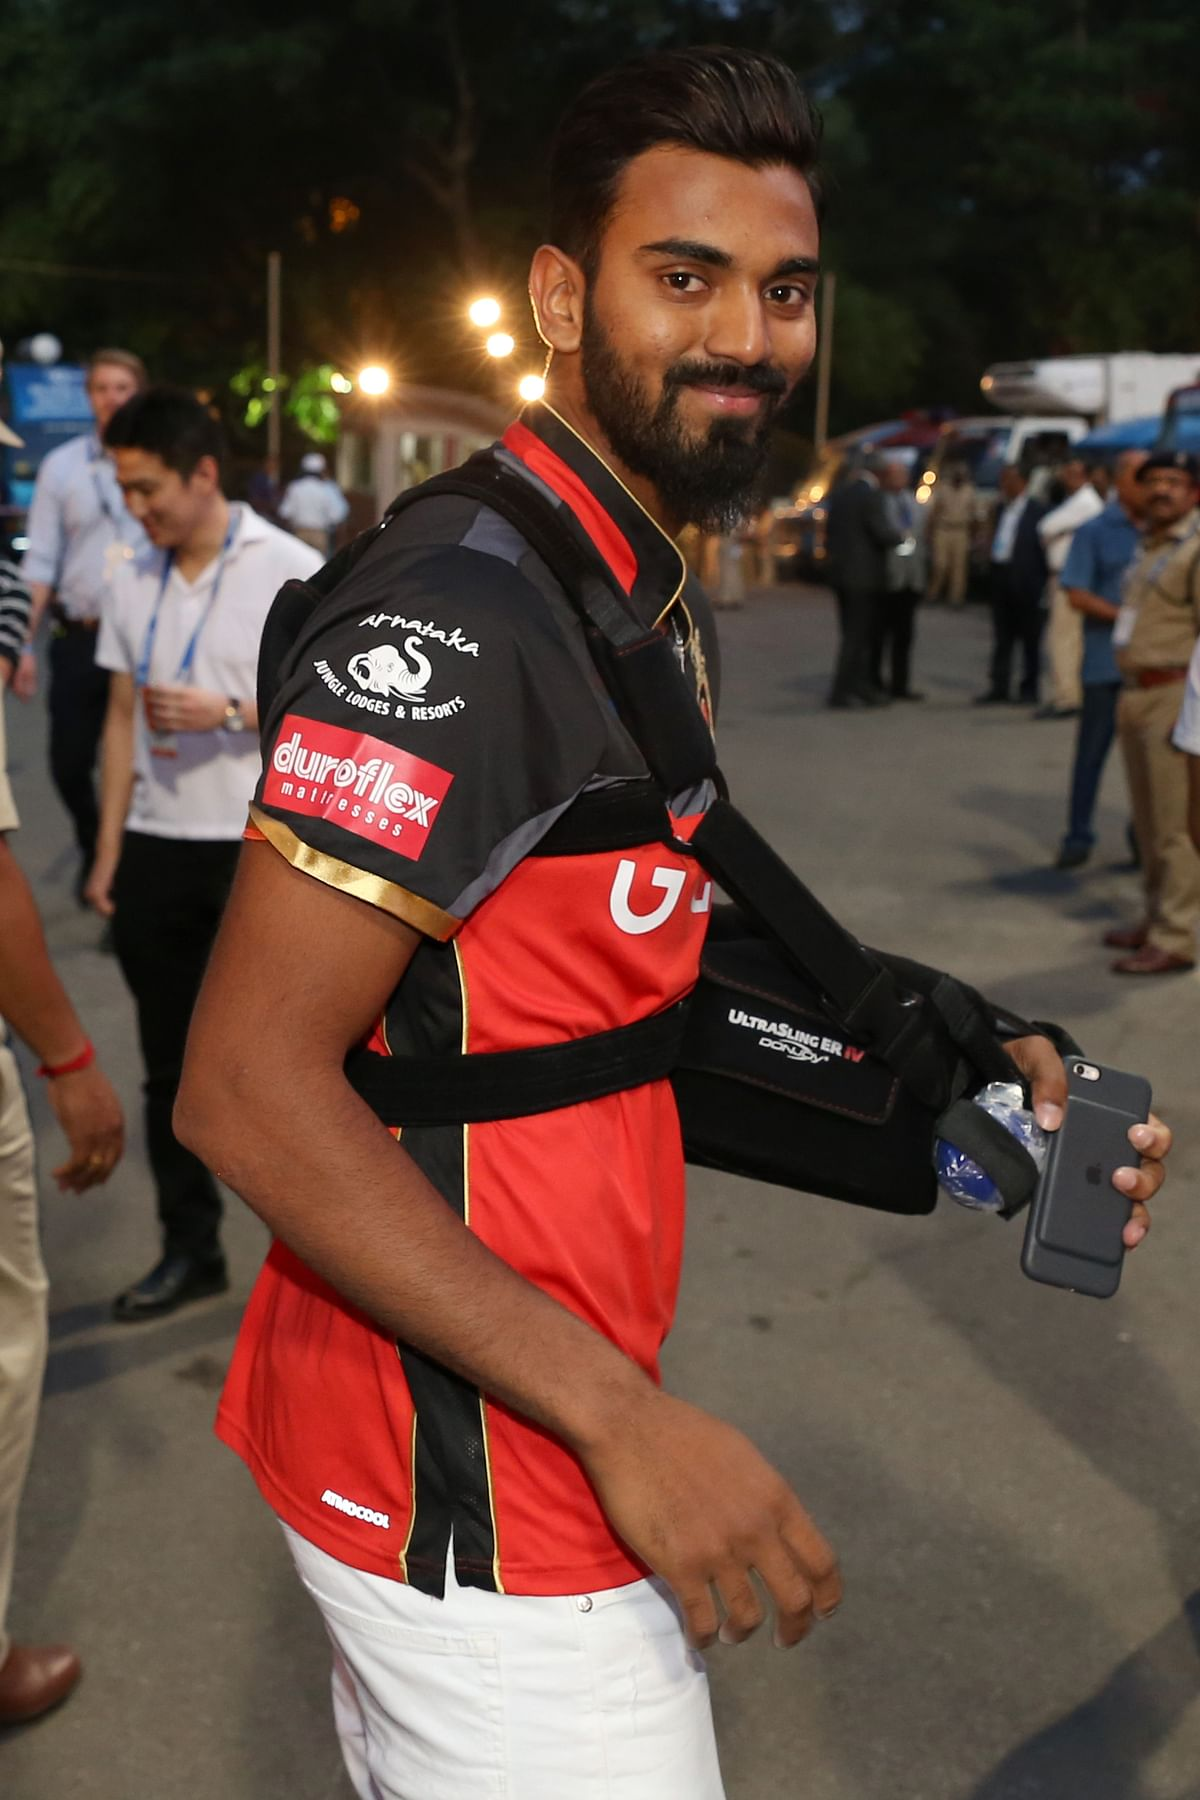 After getting surgery on his injured shoulder in London, KL Rahul joined his IPL team RCB to cheer them on for a home game. (Photo: BCCI)